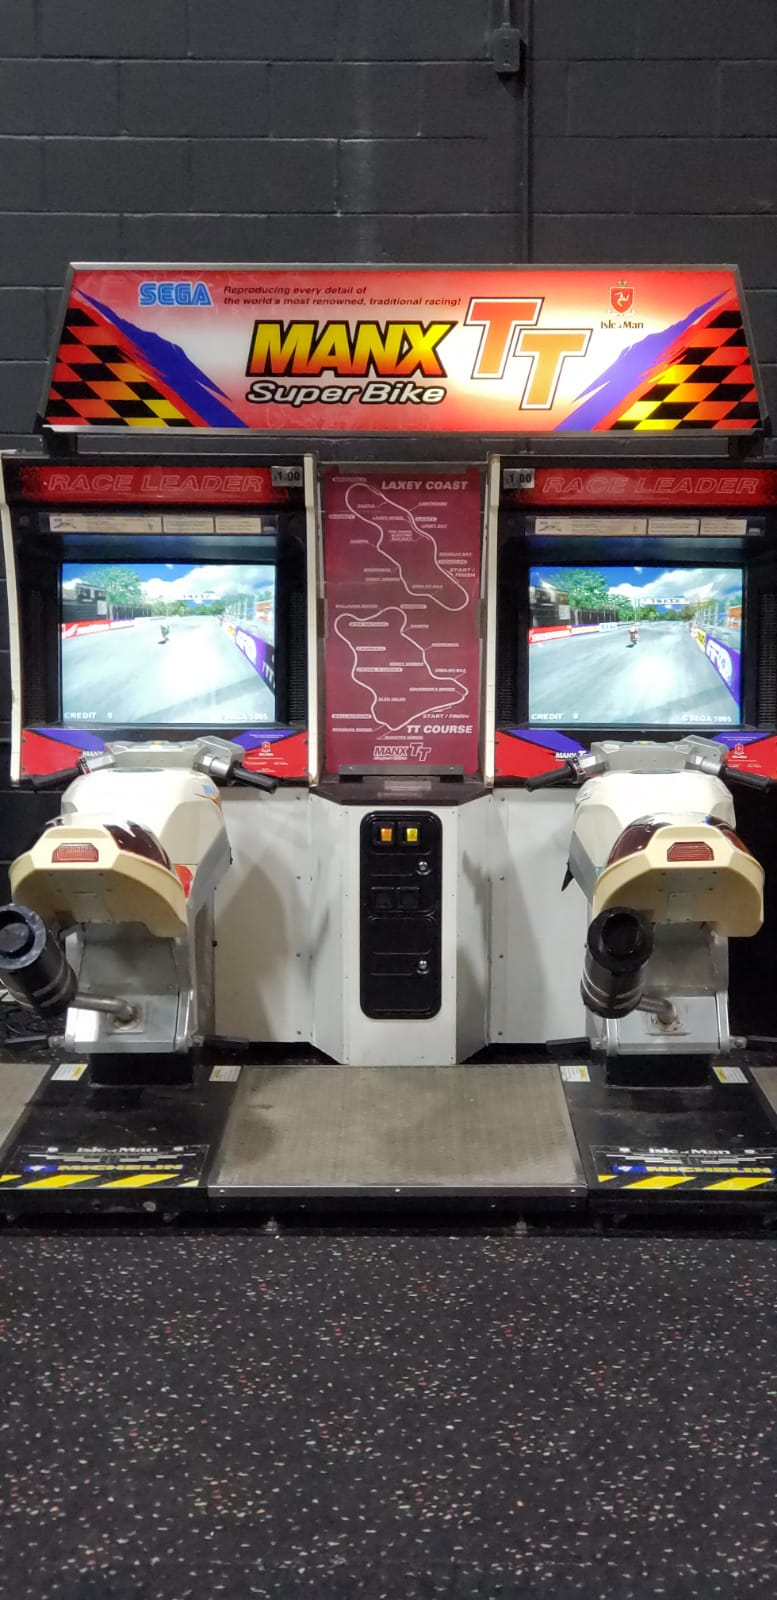 Arcade Rolling Photo 5